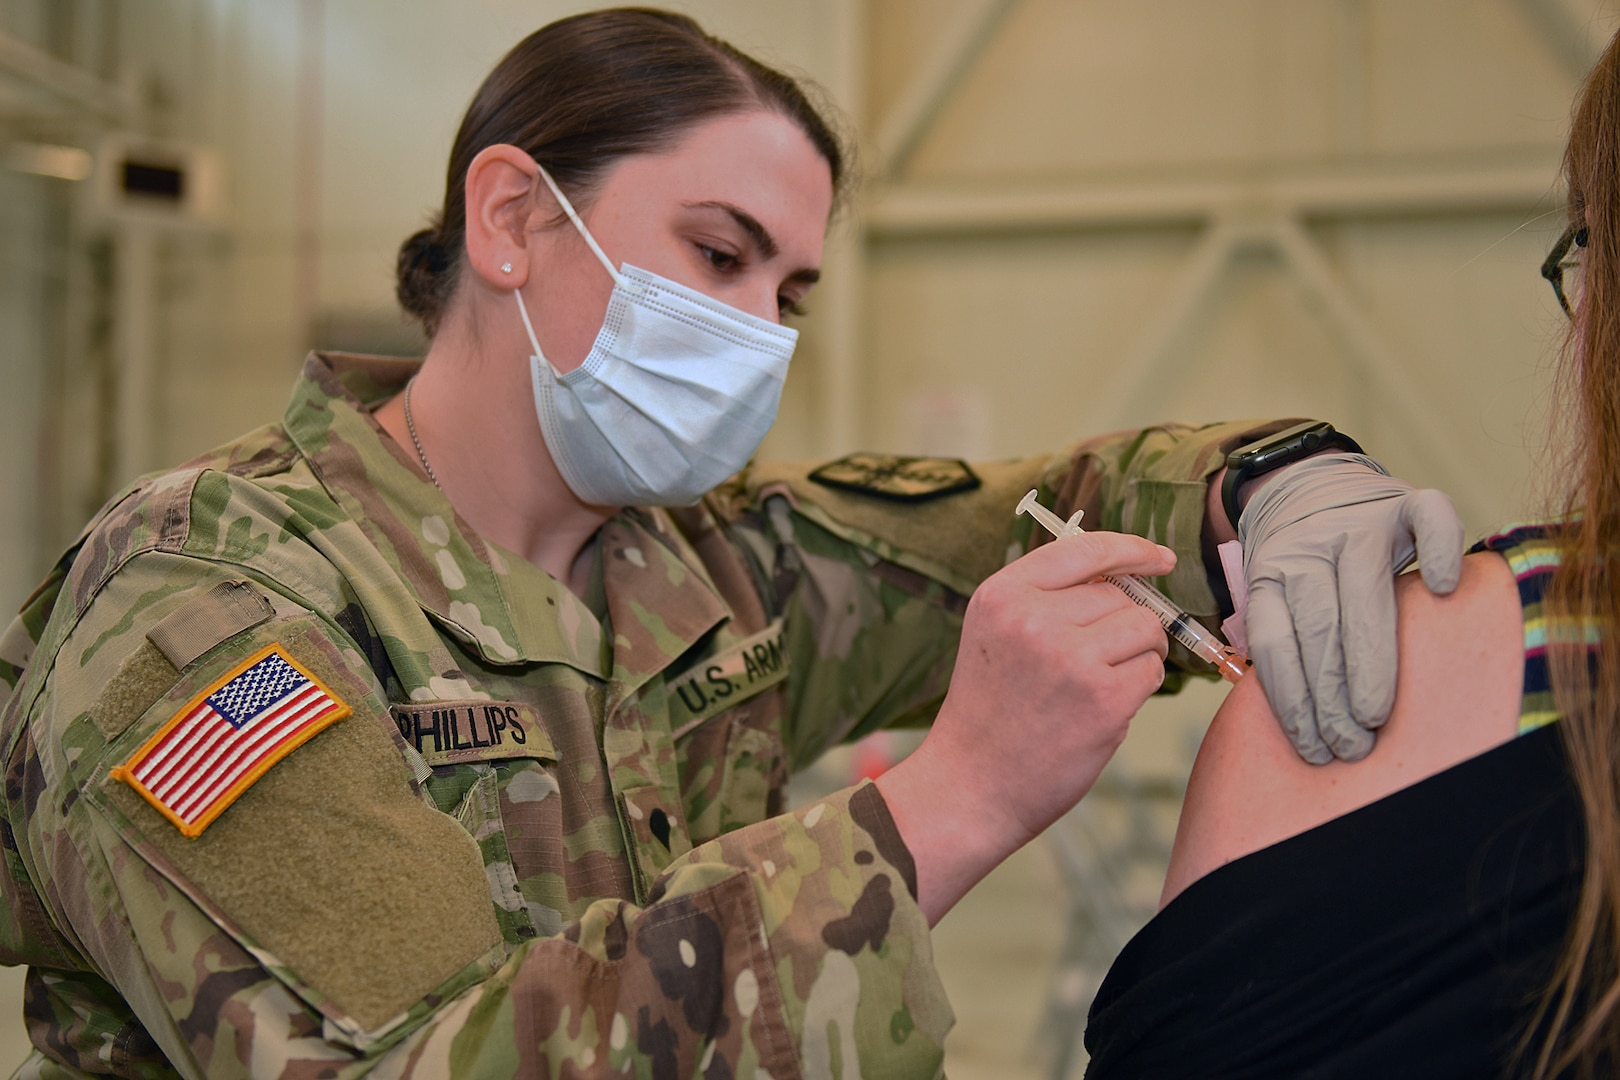 Specialist Jennifer Phillips, a combat medic with the Michigan Army National Guard's Task Force Red Lion COVID-19 vaccination/testing team, administers the vaccination to employees and their families during a walk-in clinic for the Army Tank-Automotive and Armaments Command in Warren, Michigan, April 28, 2021.